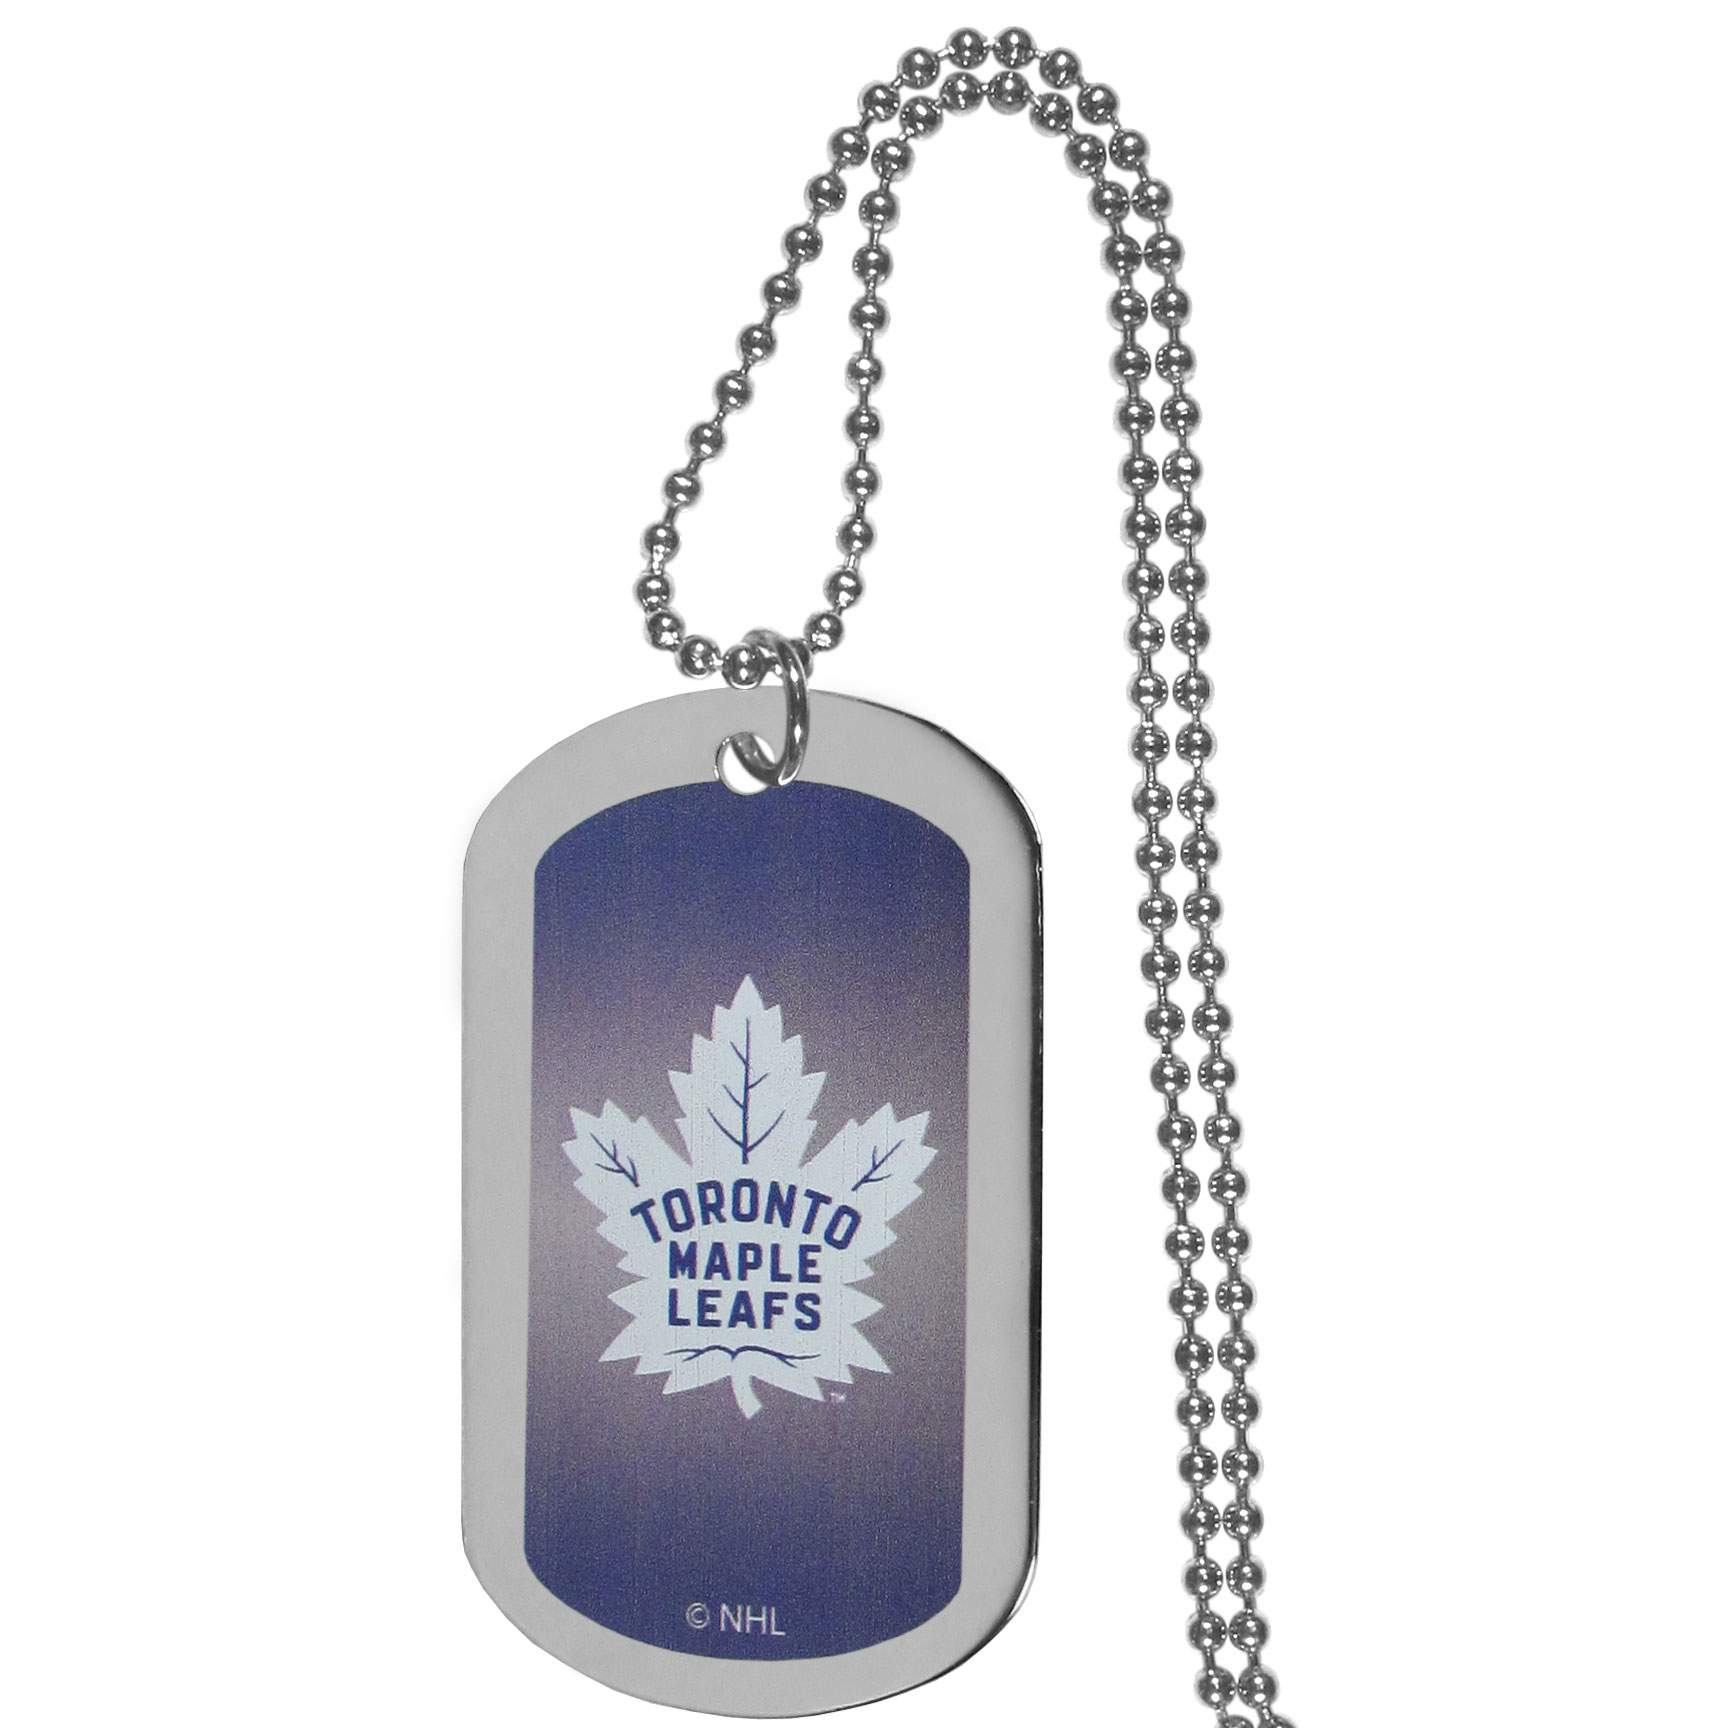 Toronto Maple Leafs® Team Tag Necklace - Dog tag necklaces are a fashion statement that is here to stay. The sporty version of the classic tag features a gradient print in team colors featuring a full color team logo over a high polish tag to create a bold and sporty look. The tag comes on a 26 inch ball chain with a ball and joint clasp. Any Toronto Maple Leafs® would be proud to wear this attractive fashion accessory.